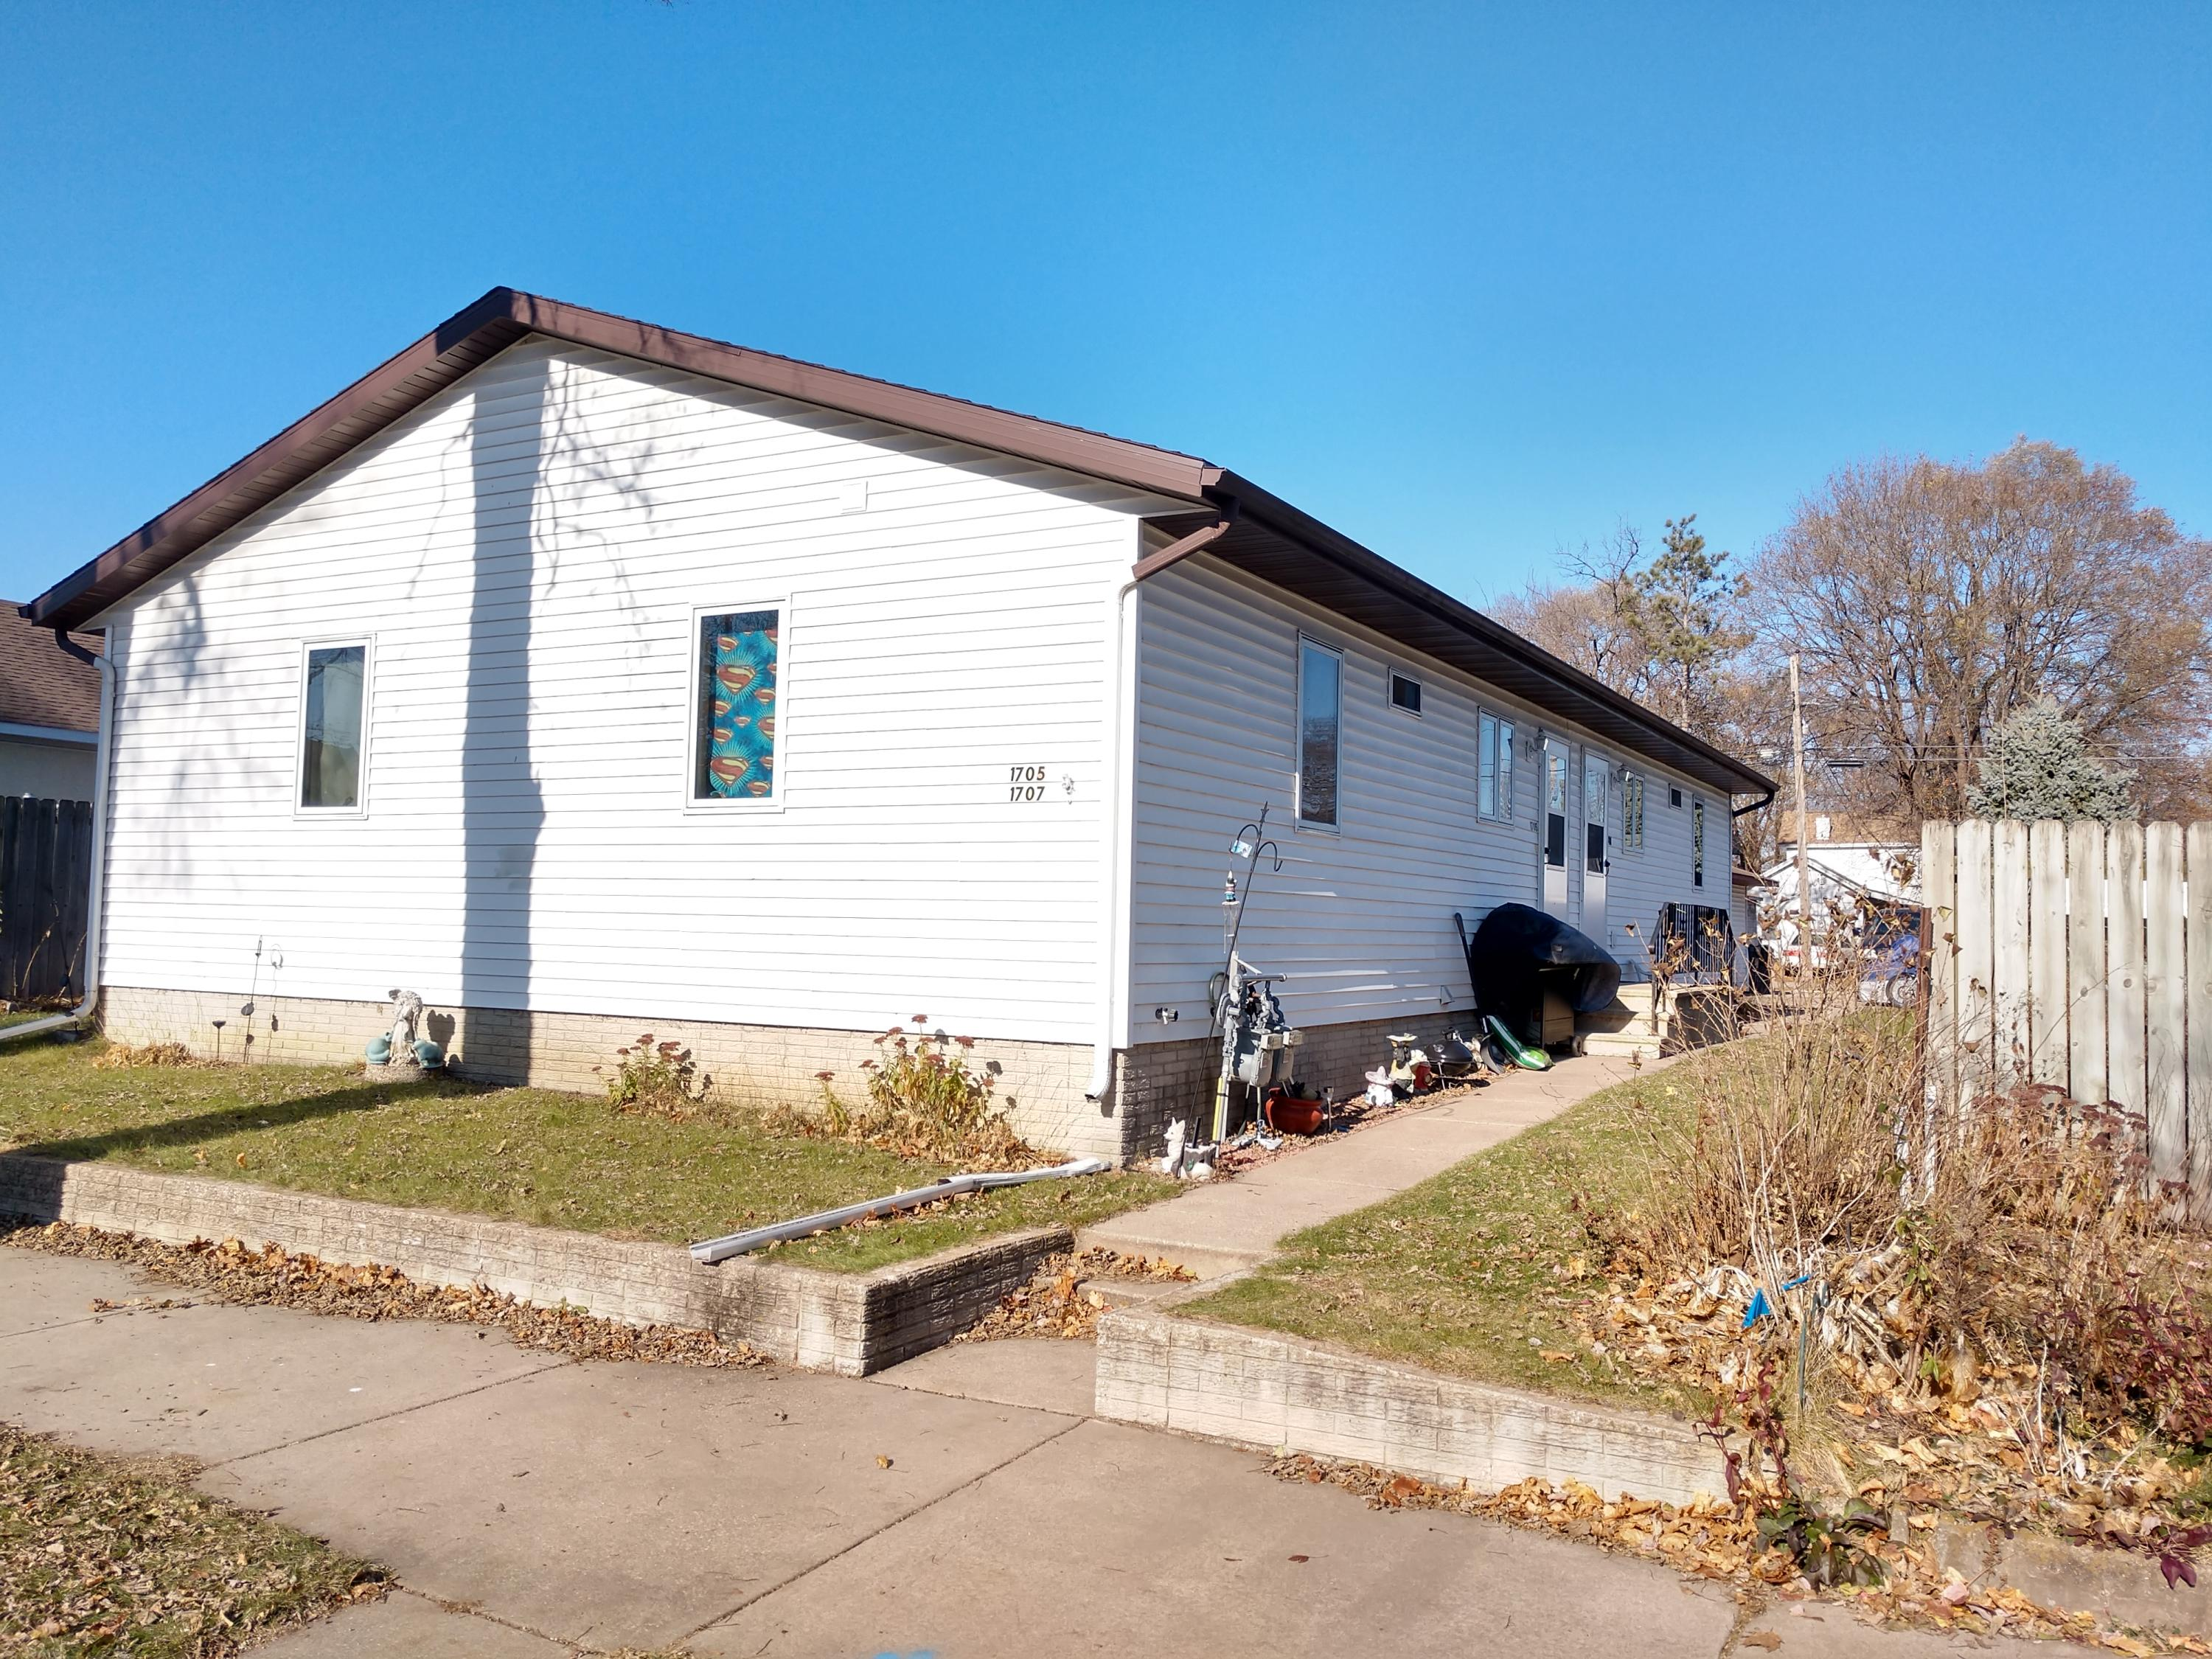 1705-1707 Winnebago ST<br /> La Crosse,La Crosse,54601,2 Bedrooms Bedrooms,1 BathroomBathrooms,Two-family,Winnebago ST,1614519